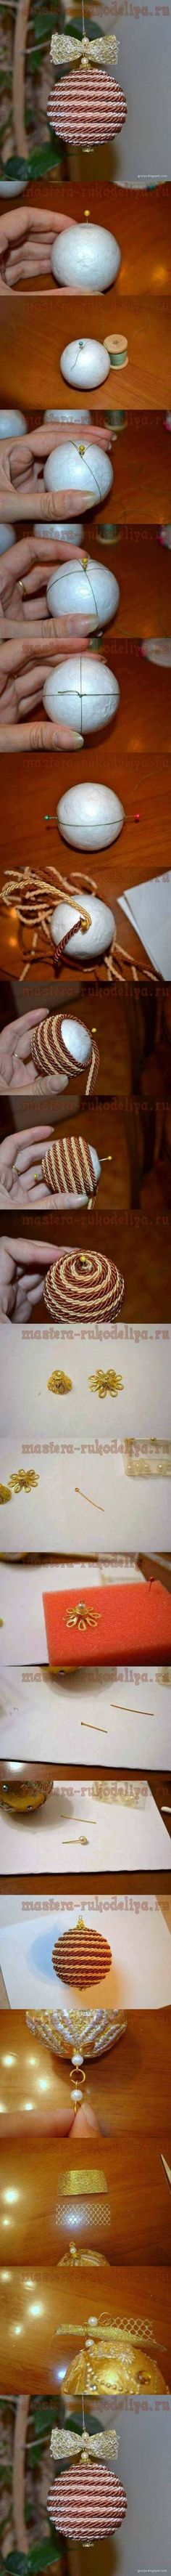 DIY Ball of String DIY Projects